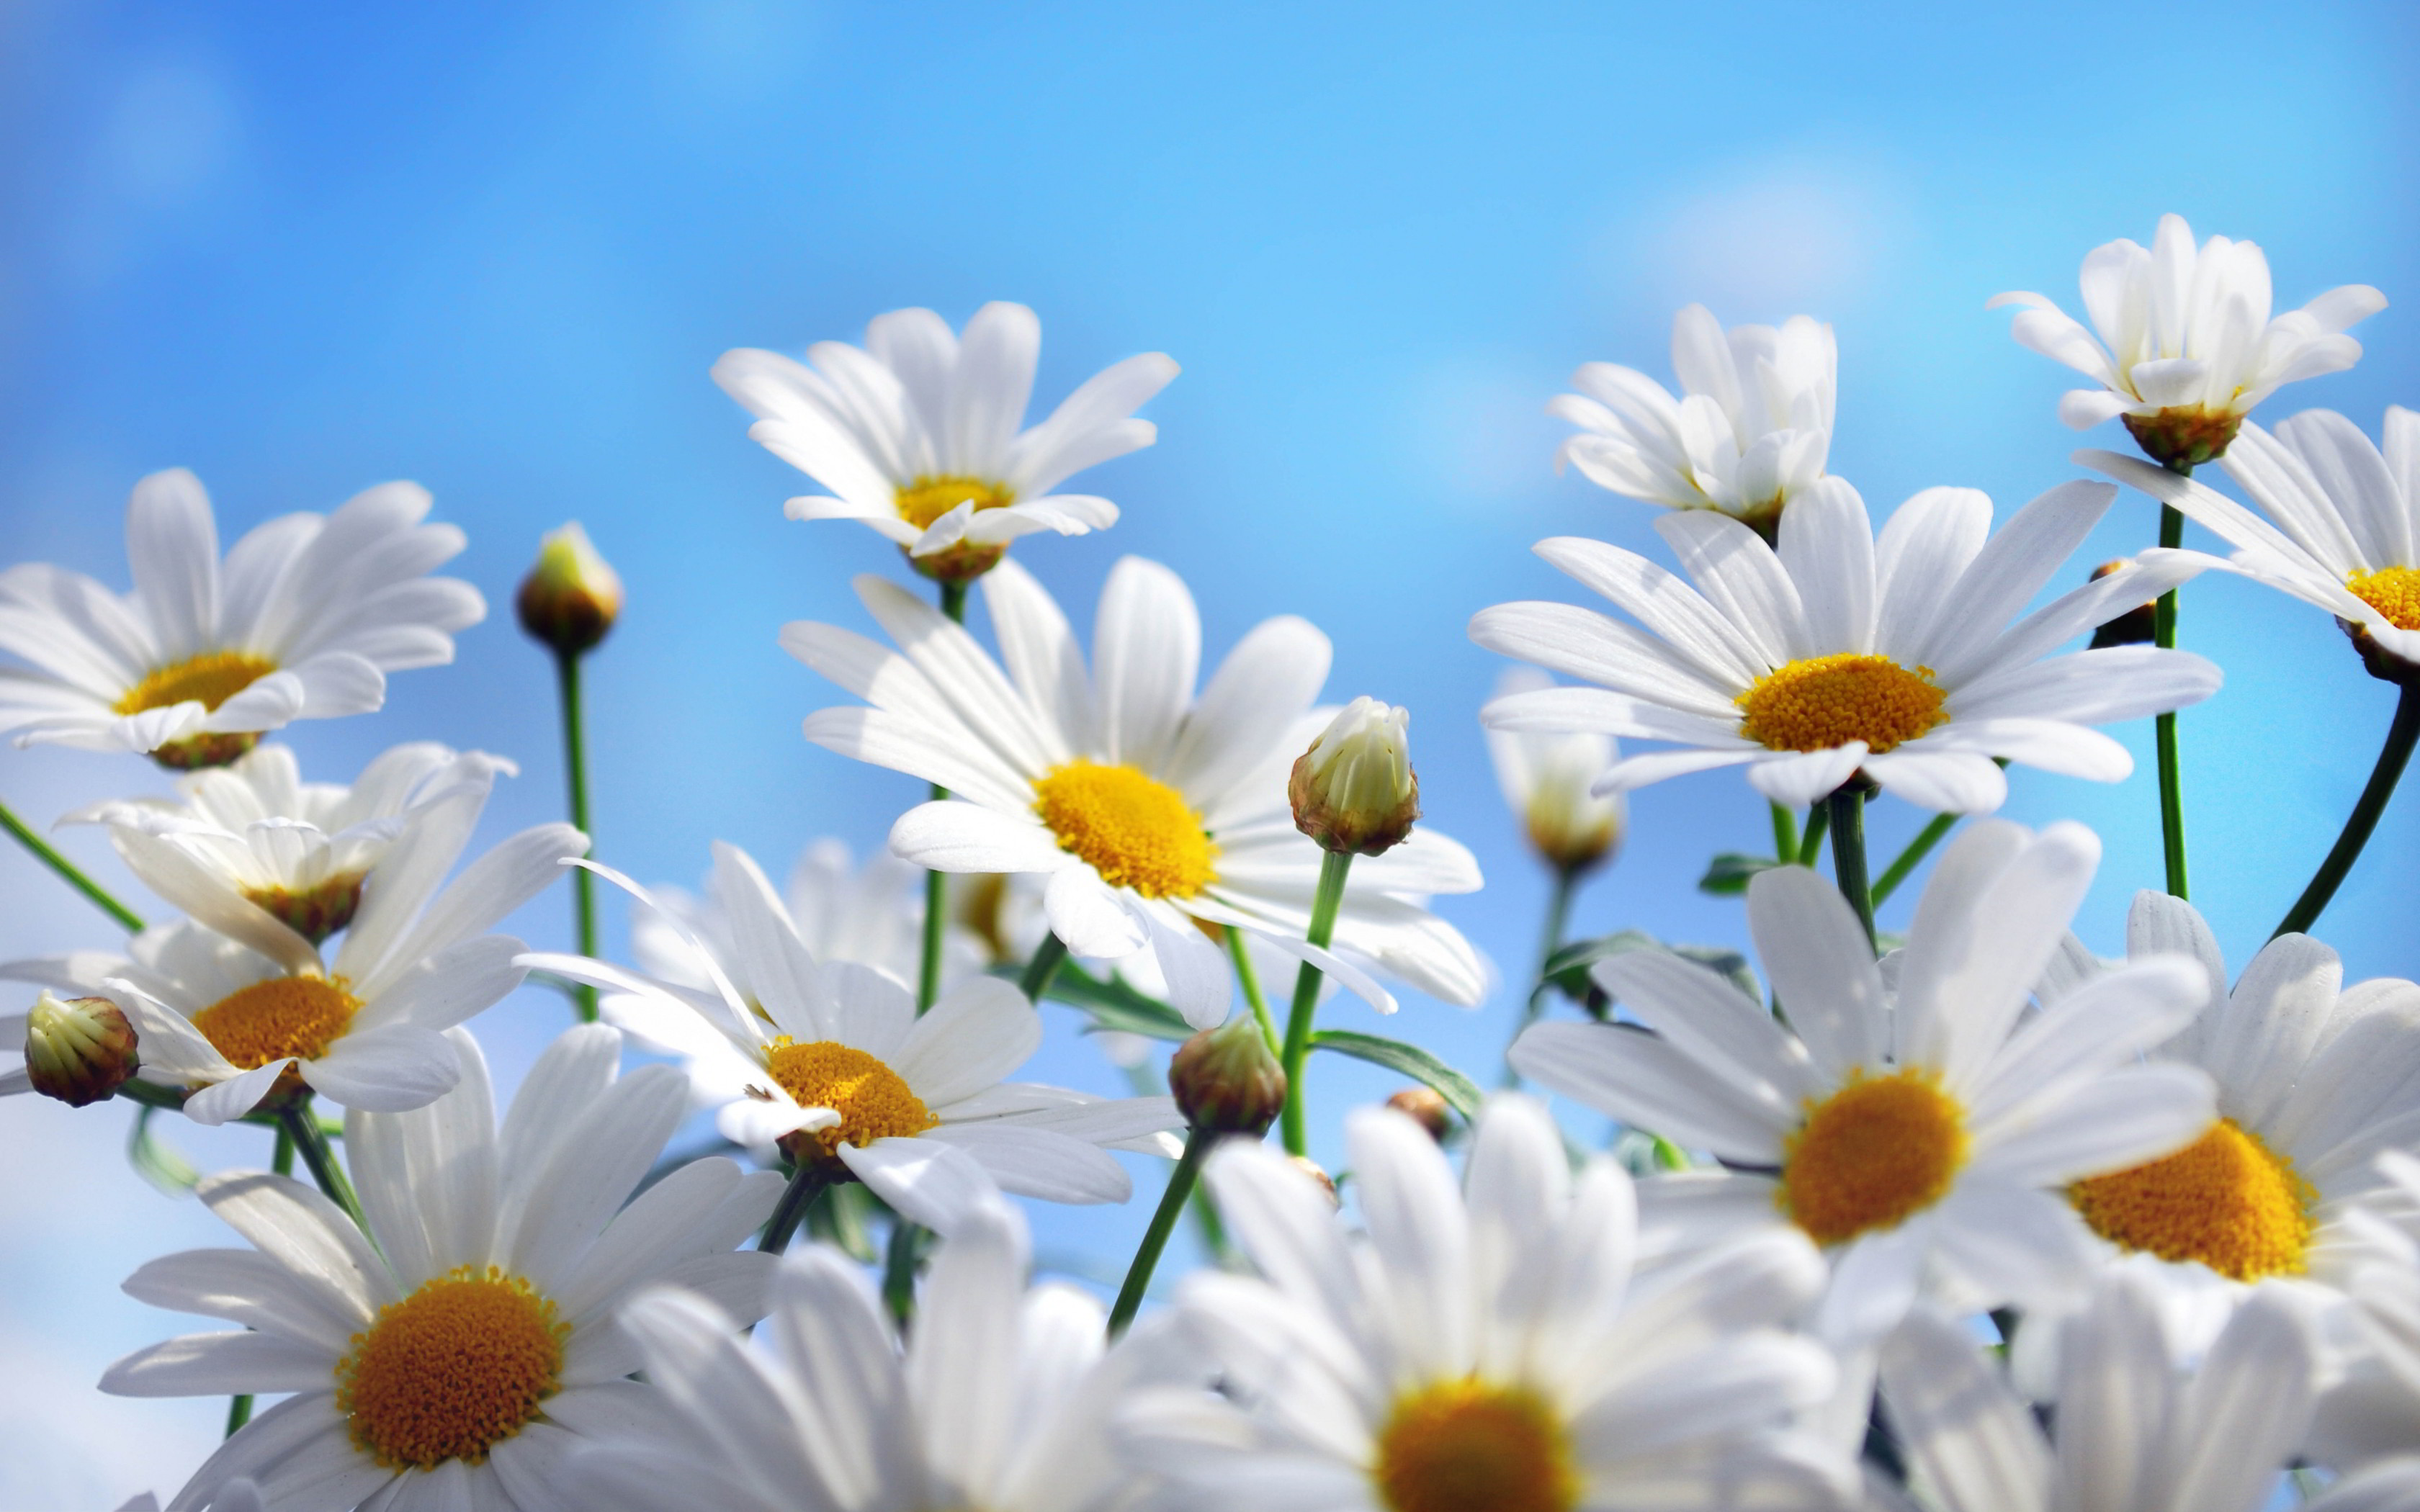 Daisy flower wallpapers 51 background pictures 3360x2100 daisy flower wallpapers mobile on hd wallpaper izmirmasajfo